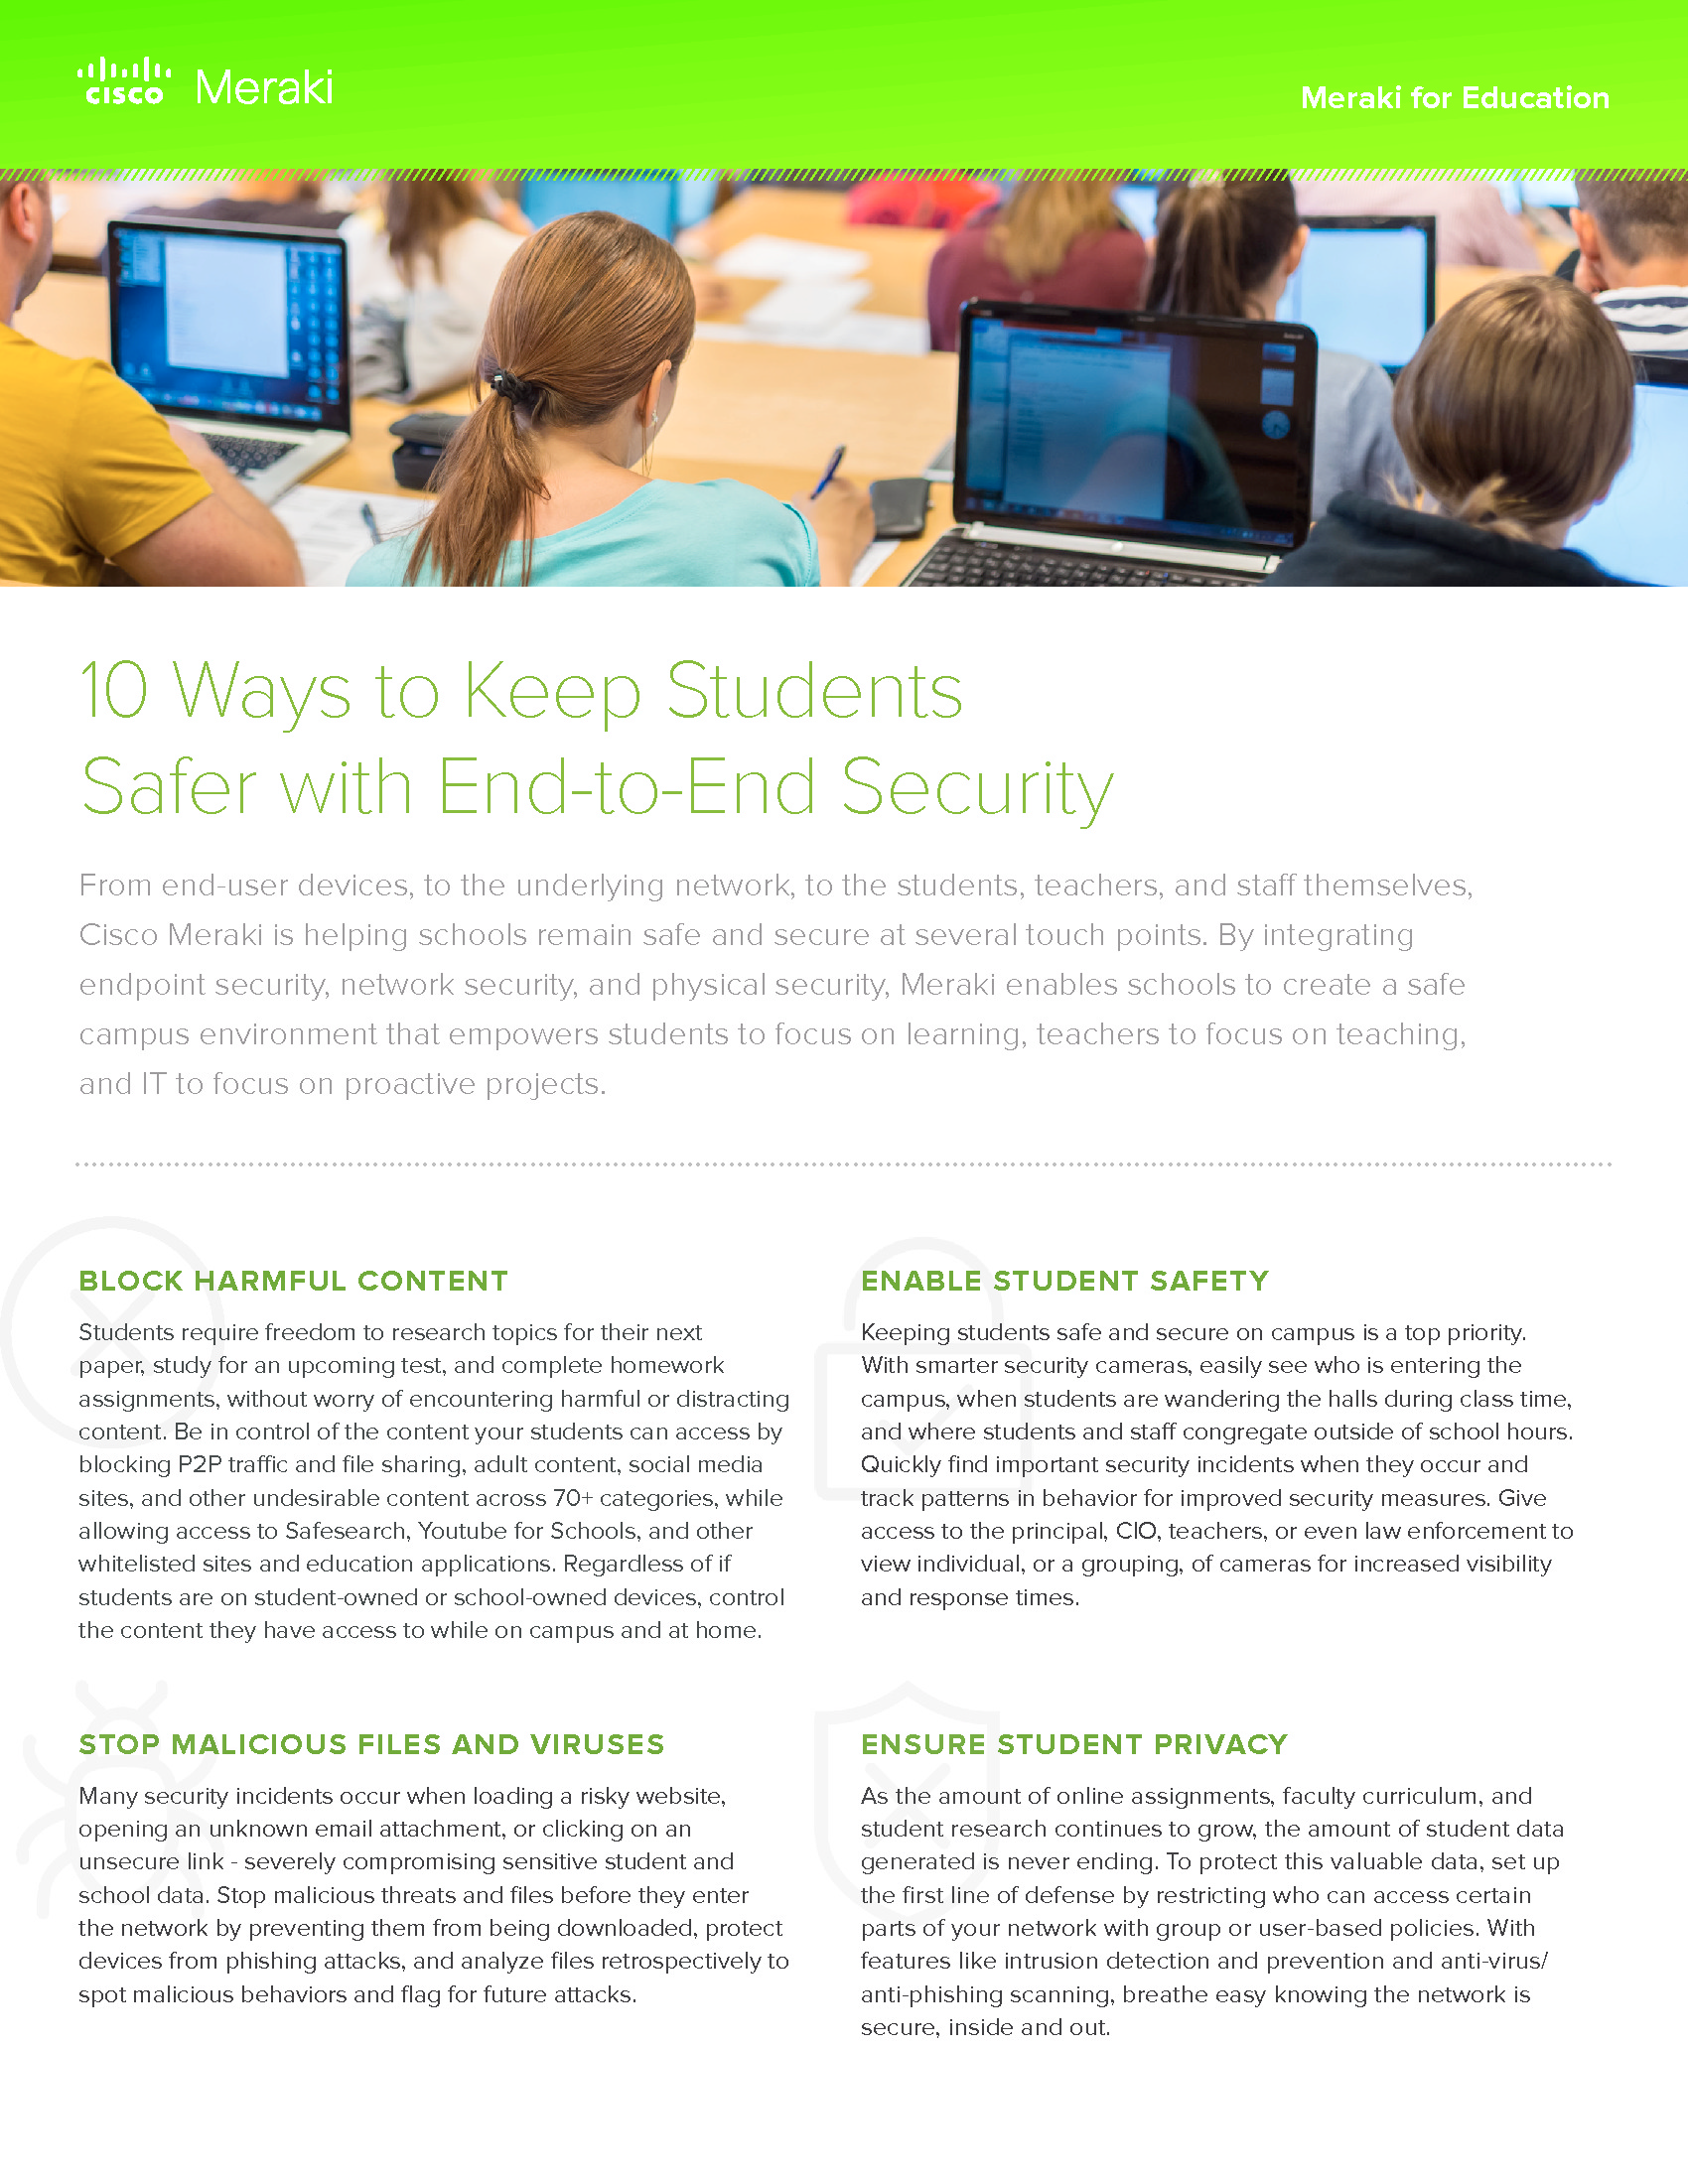 CDE - Cisco Meraki - Client Supplied - 181106 - 10 Ways to Keep Students Safer